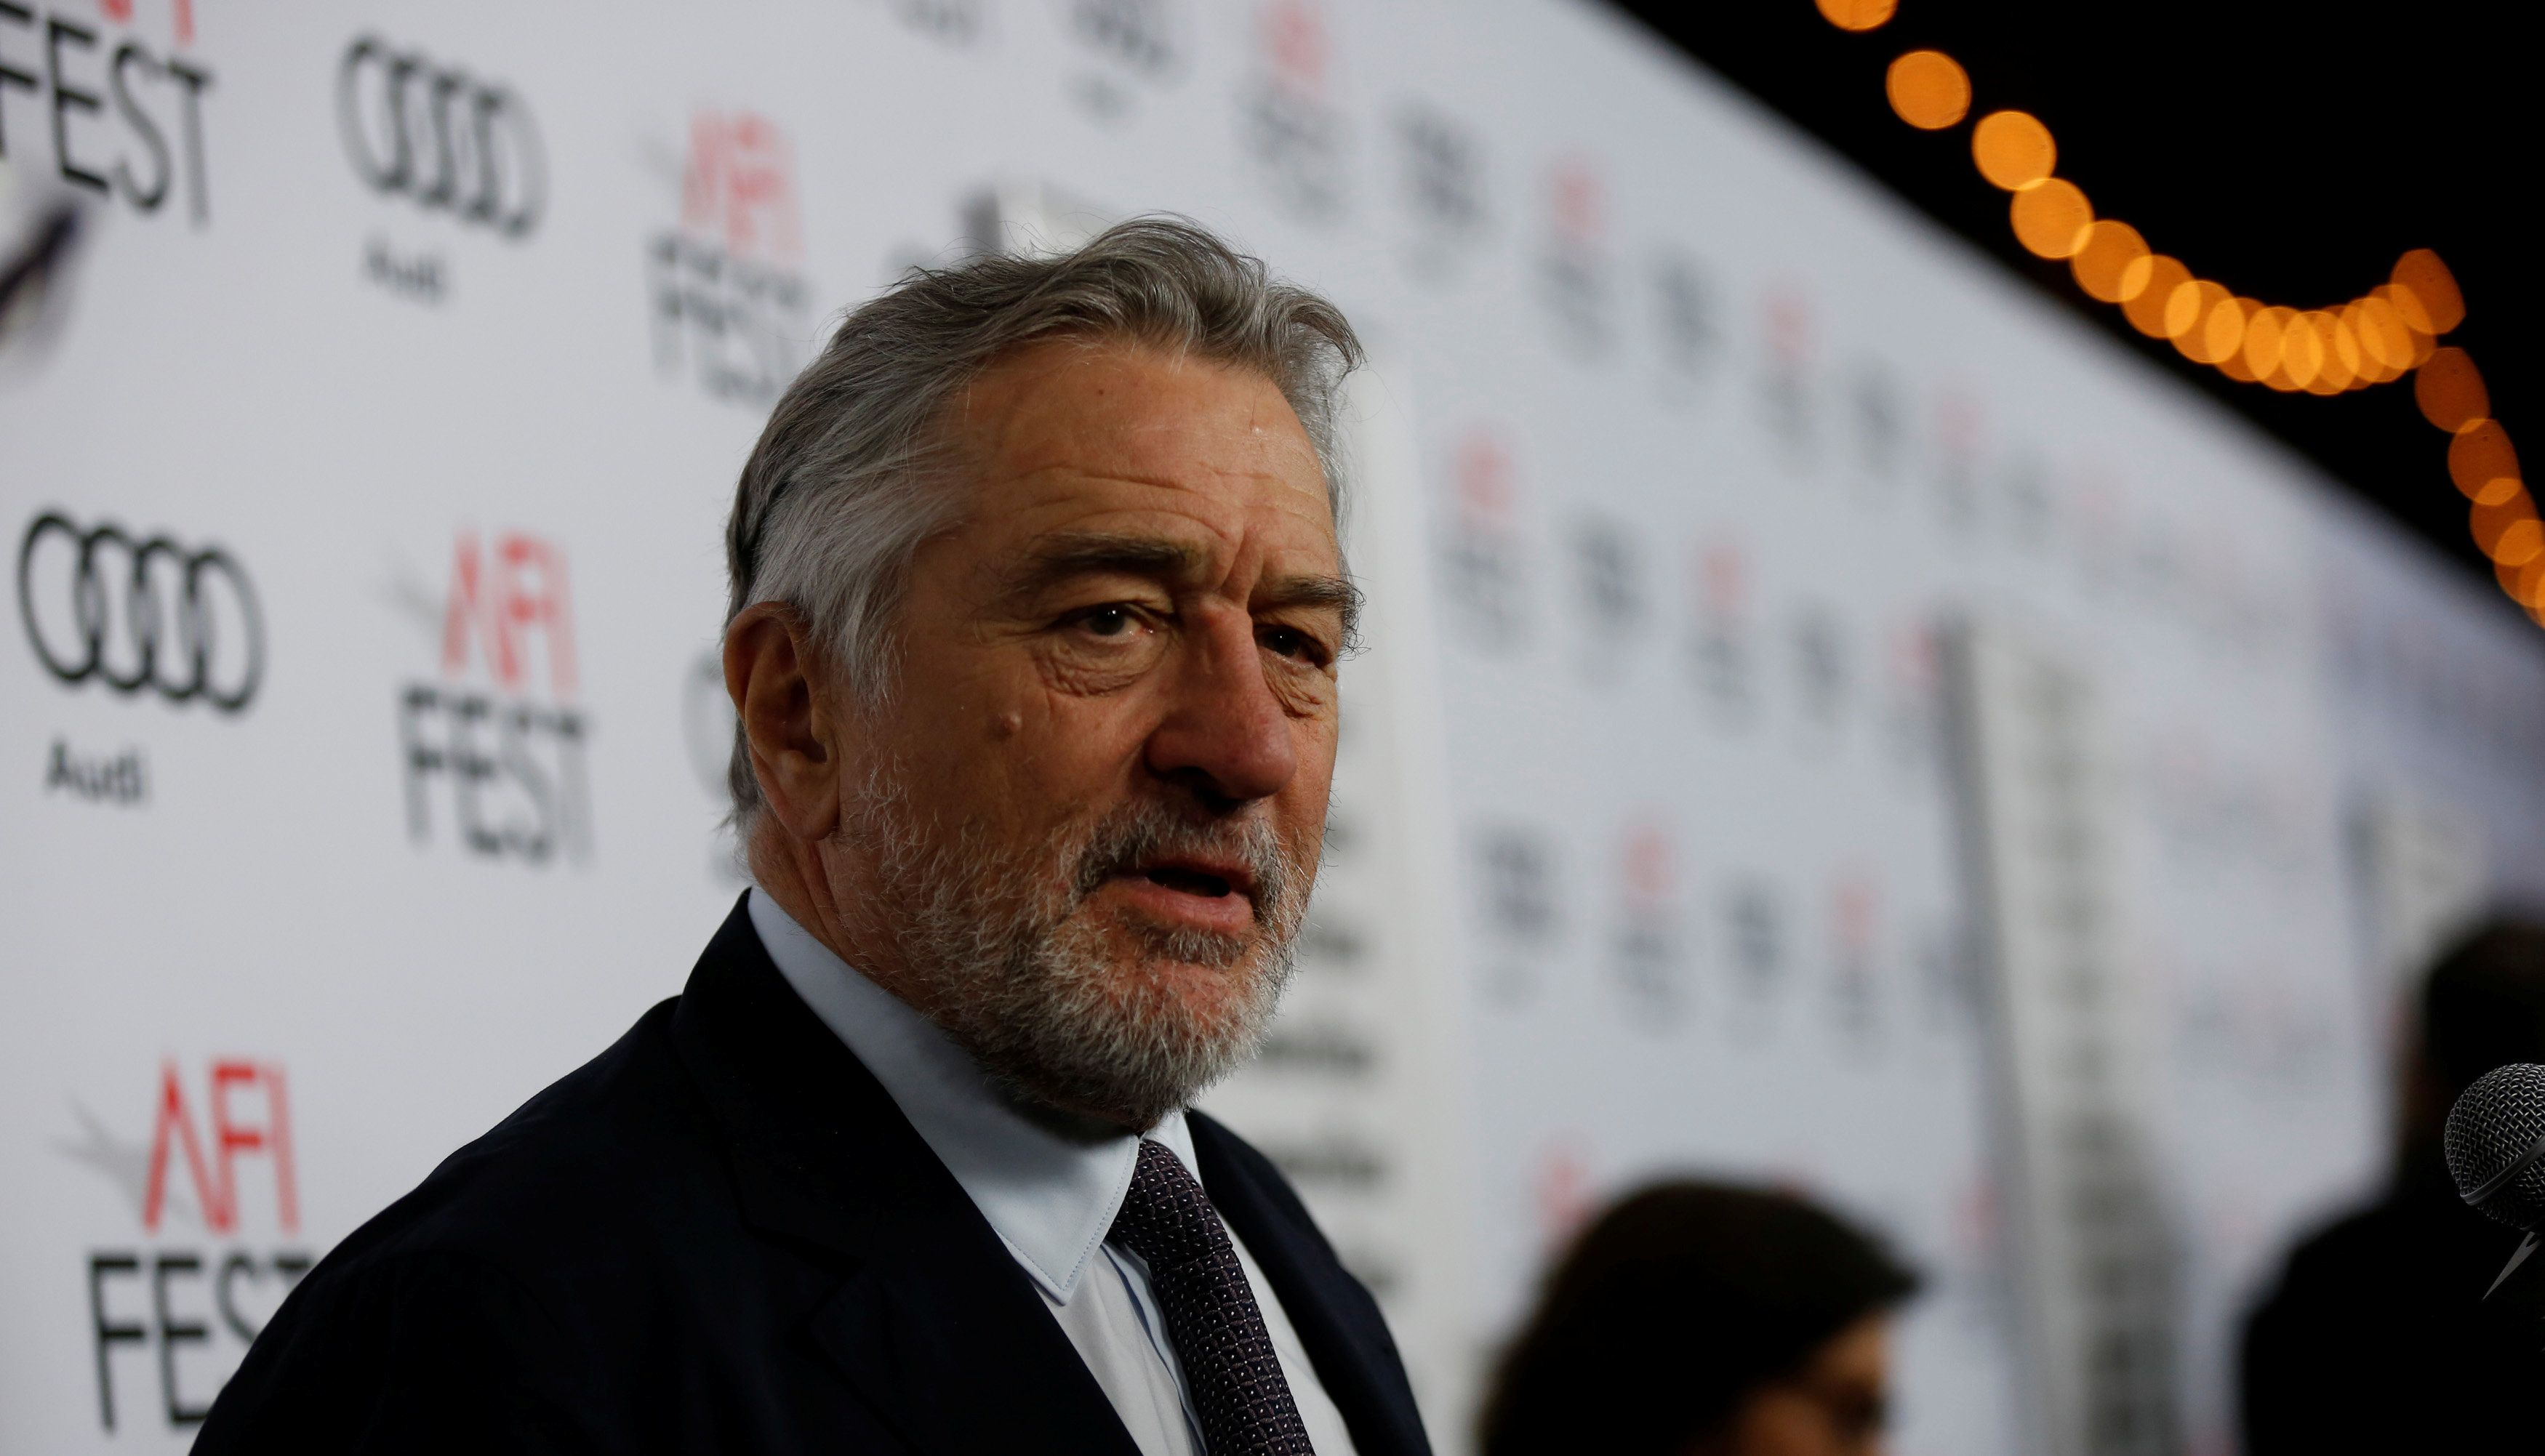 """Cast member Robert De Niro is interviewed at the premiere of """"The Comedian"""" during AFI Fest at the Egyptian Theatre in Los Angeles, California U.S., November 11, 2016.   REUTERS/Mario Anzuoni"""